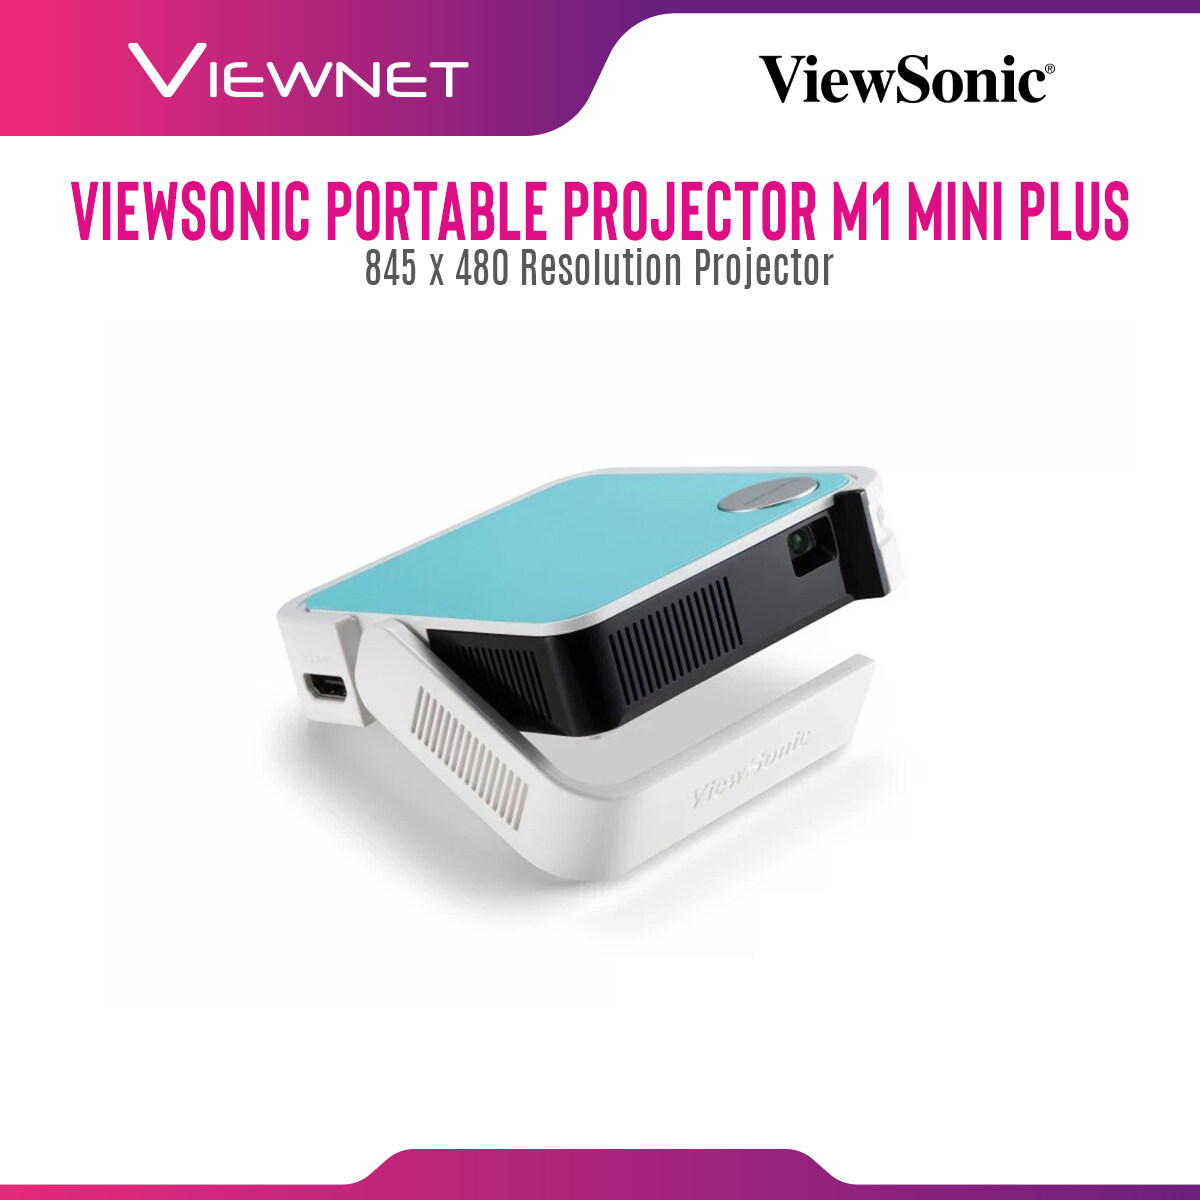 Viewsonic Portable Projector M1 Mini Plus with 854x480 Resolution, 120 Lumens, 30000 Hours Lamp Life in Eco Mode